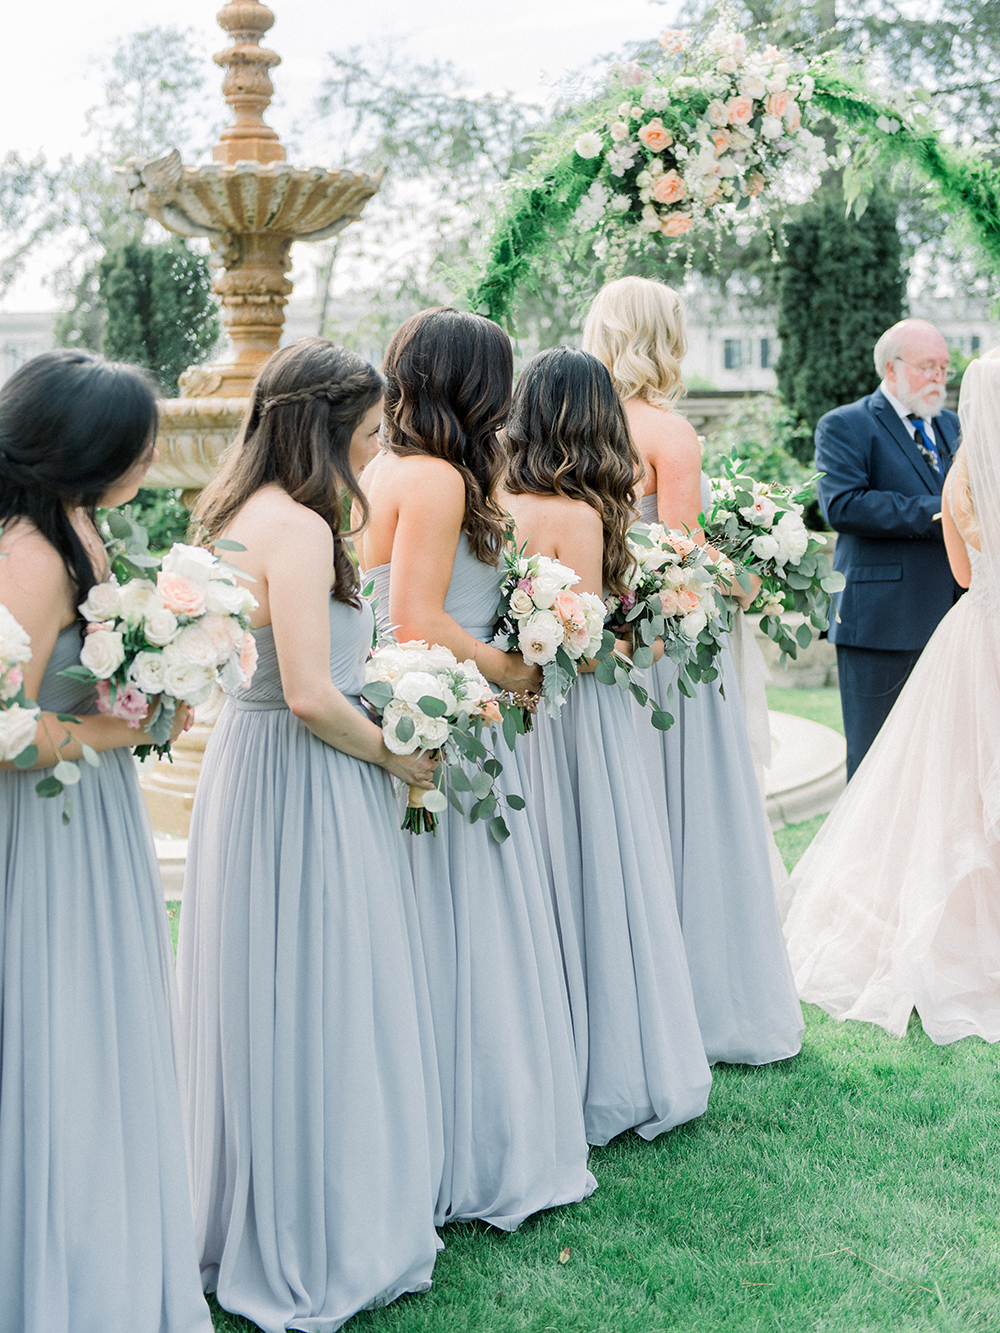 Romantic and Classic Greystone Mansion Wedding by Lucky Day Events Co. x Jordan Galindo Photography // Grey Show Me Your Mumu Bridesmaids